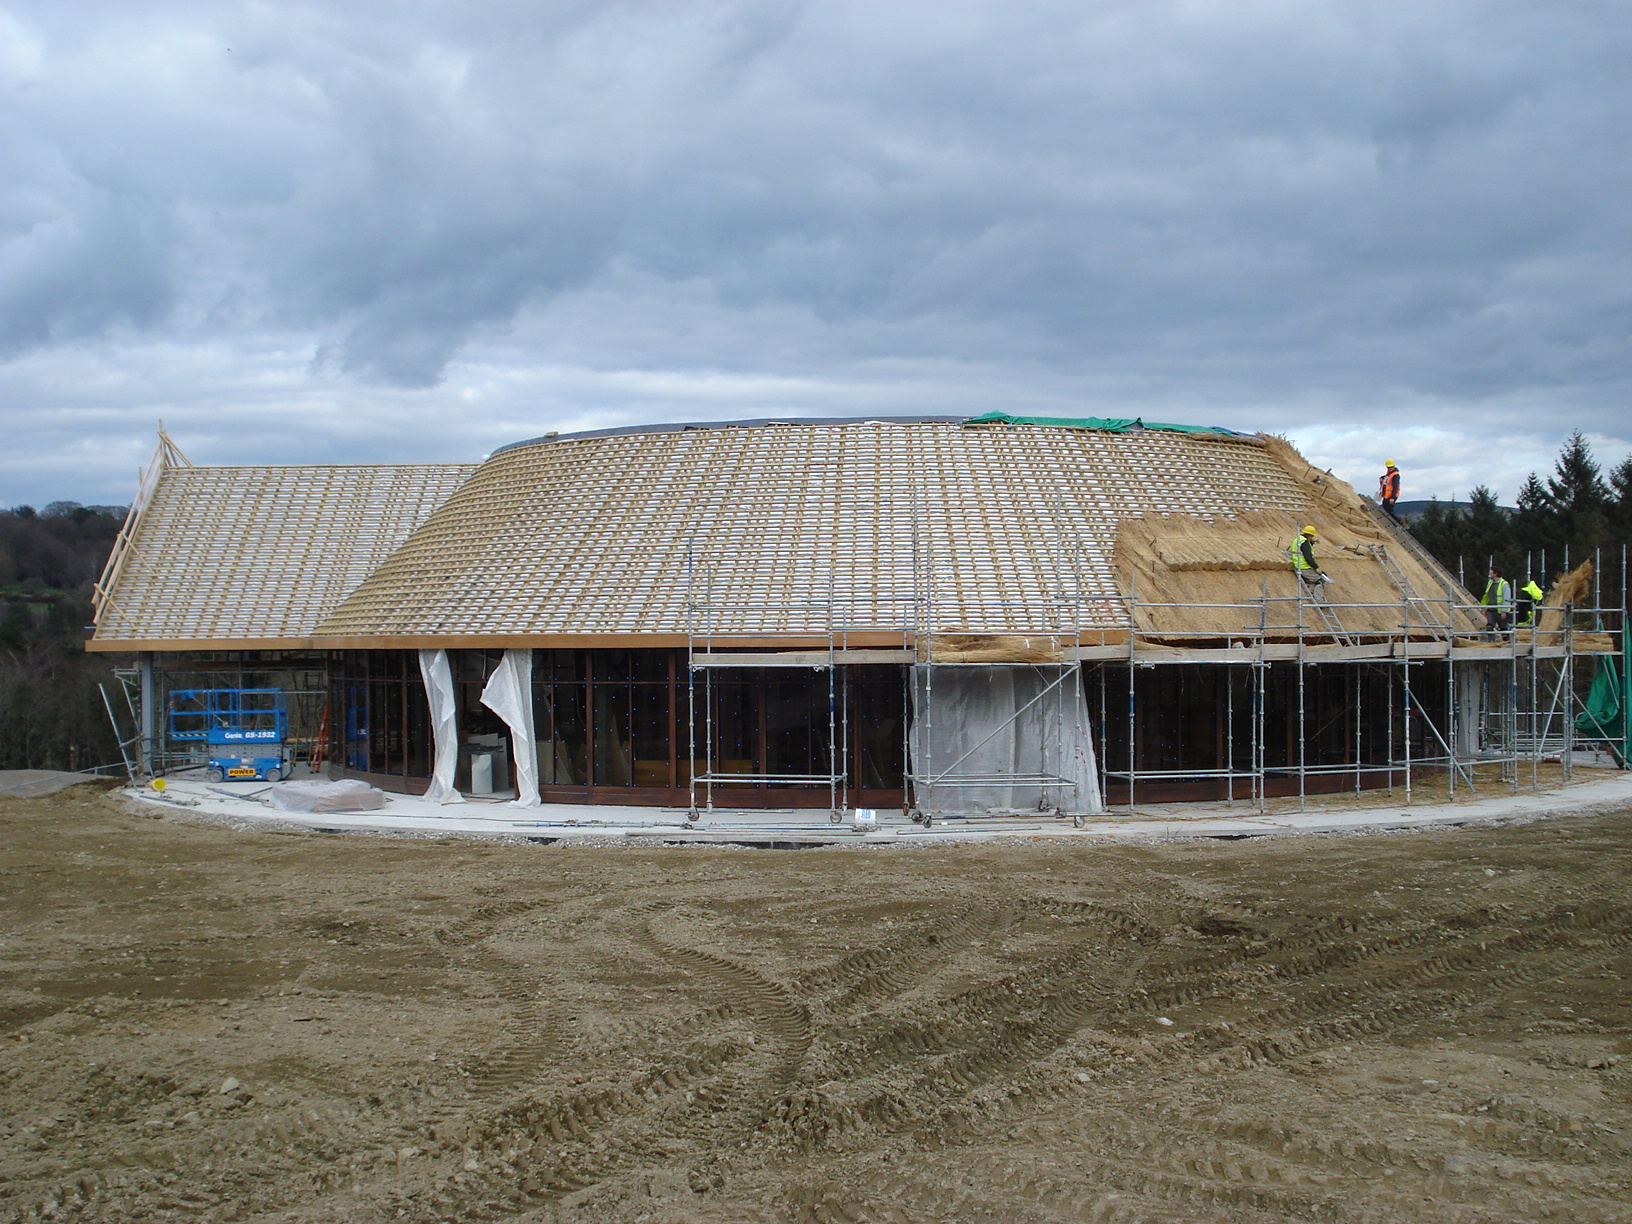 Thatched roof on the Clubhouse